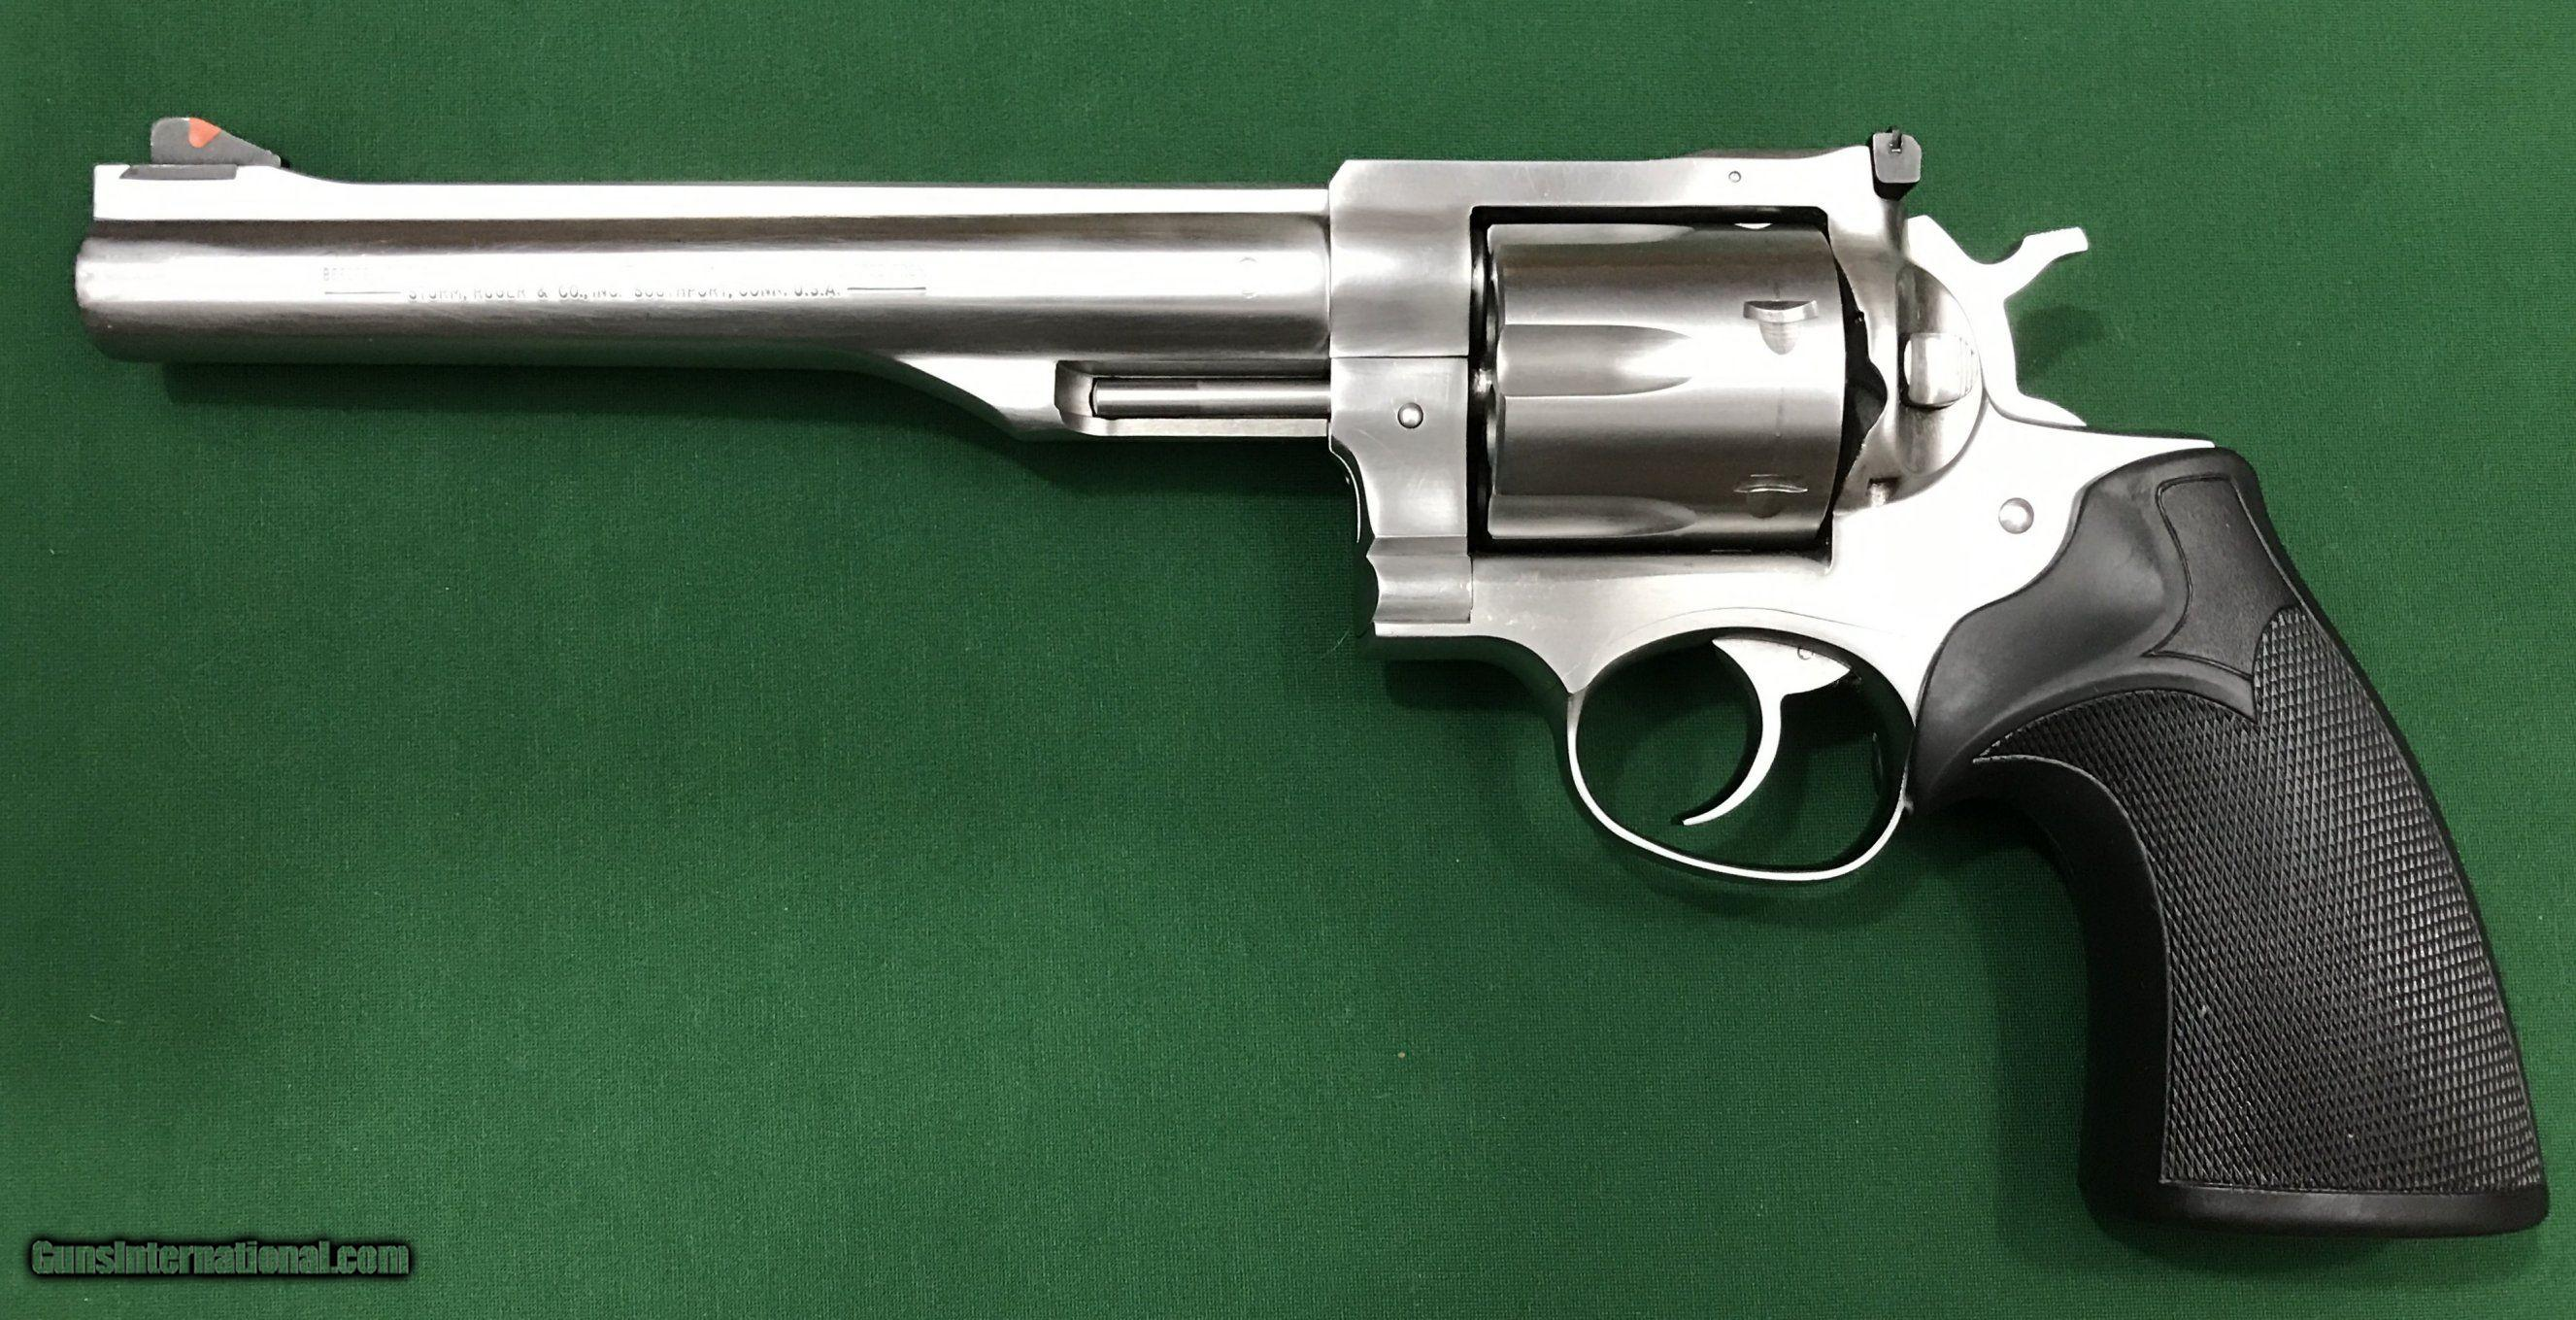 Ruger Redhawk 44 Magnum Stainless Steel Single Action